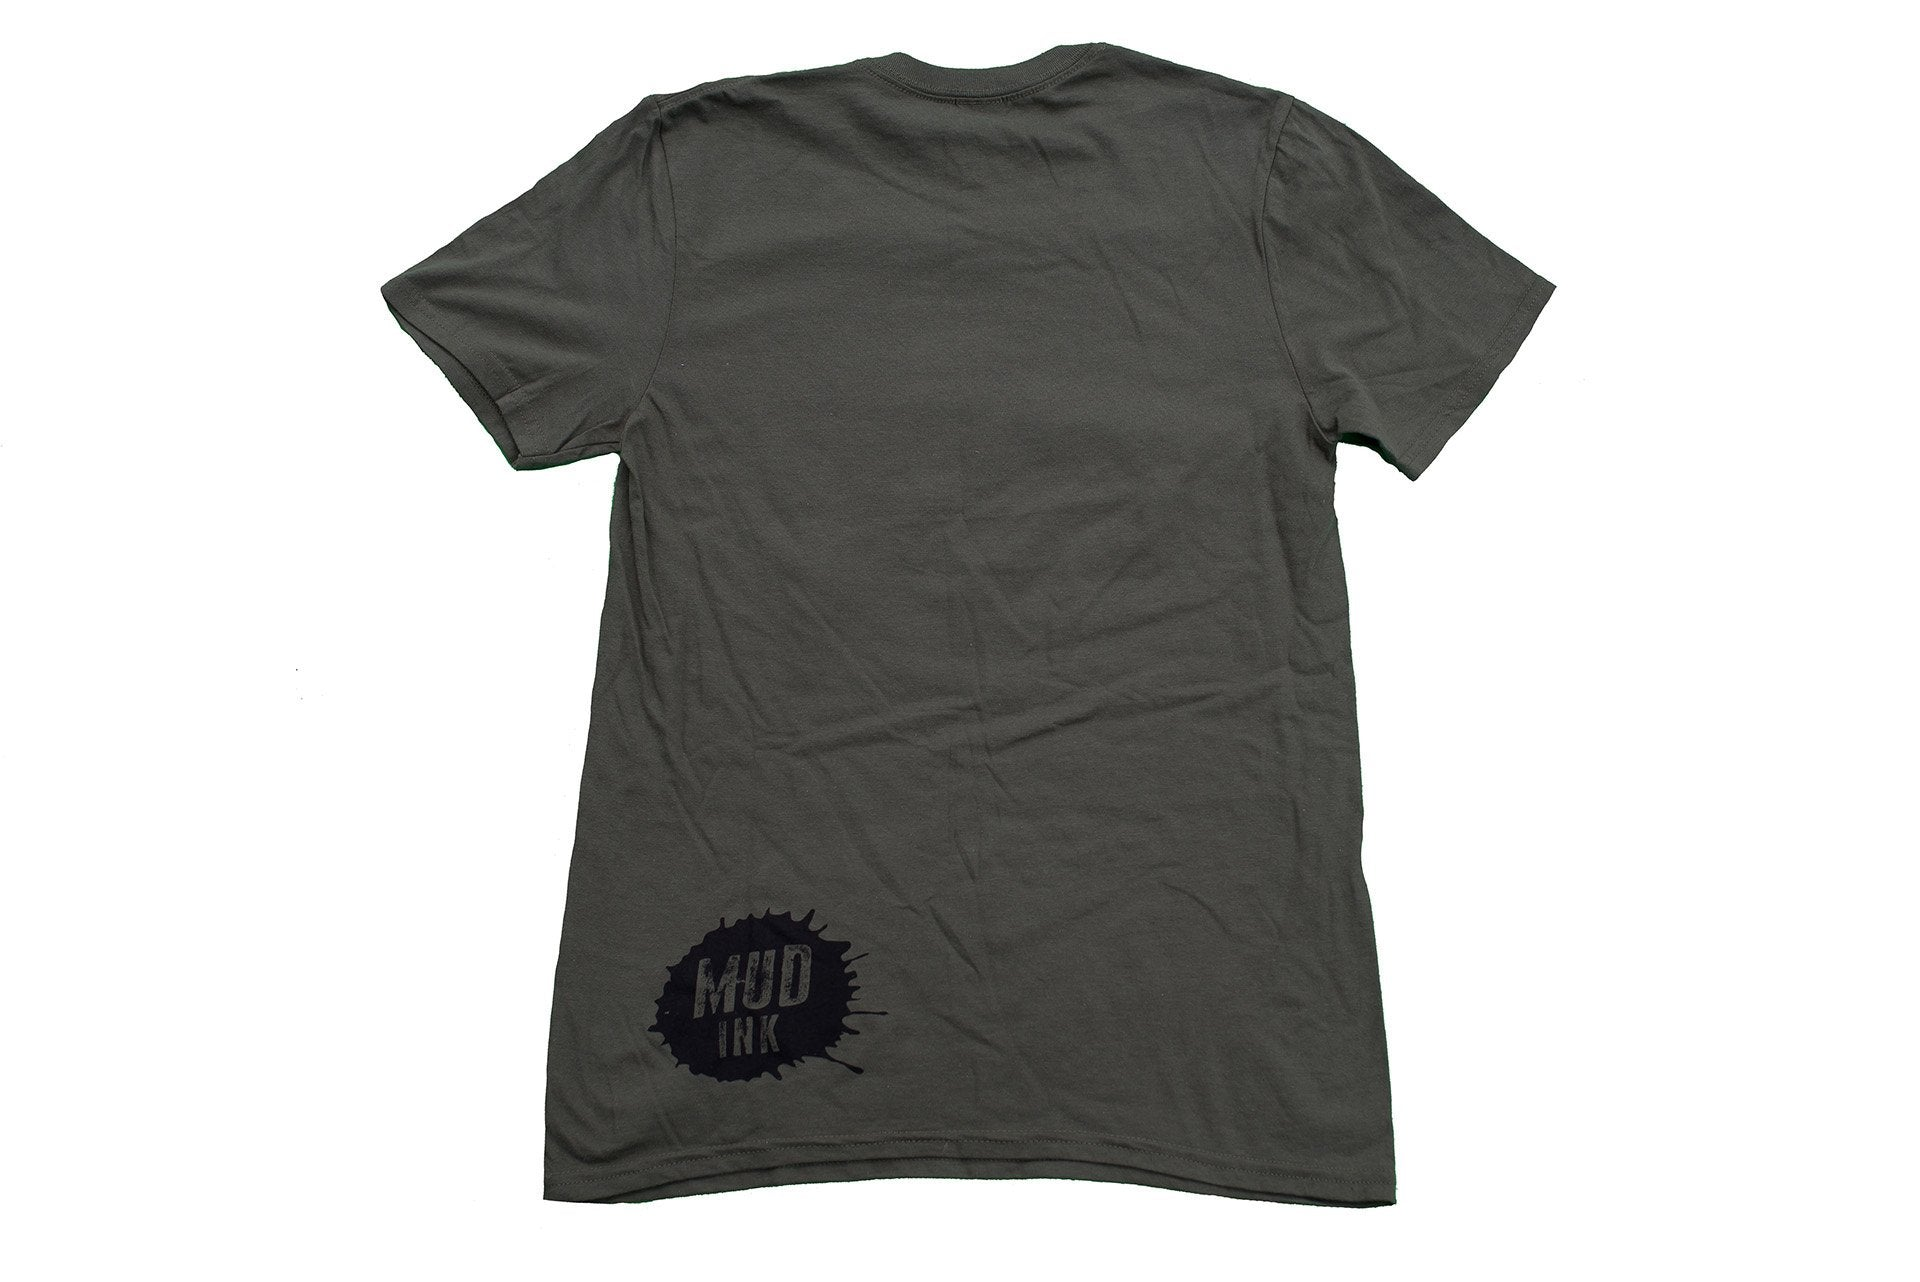 Military Green Goggle Design Short Sleeve